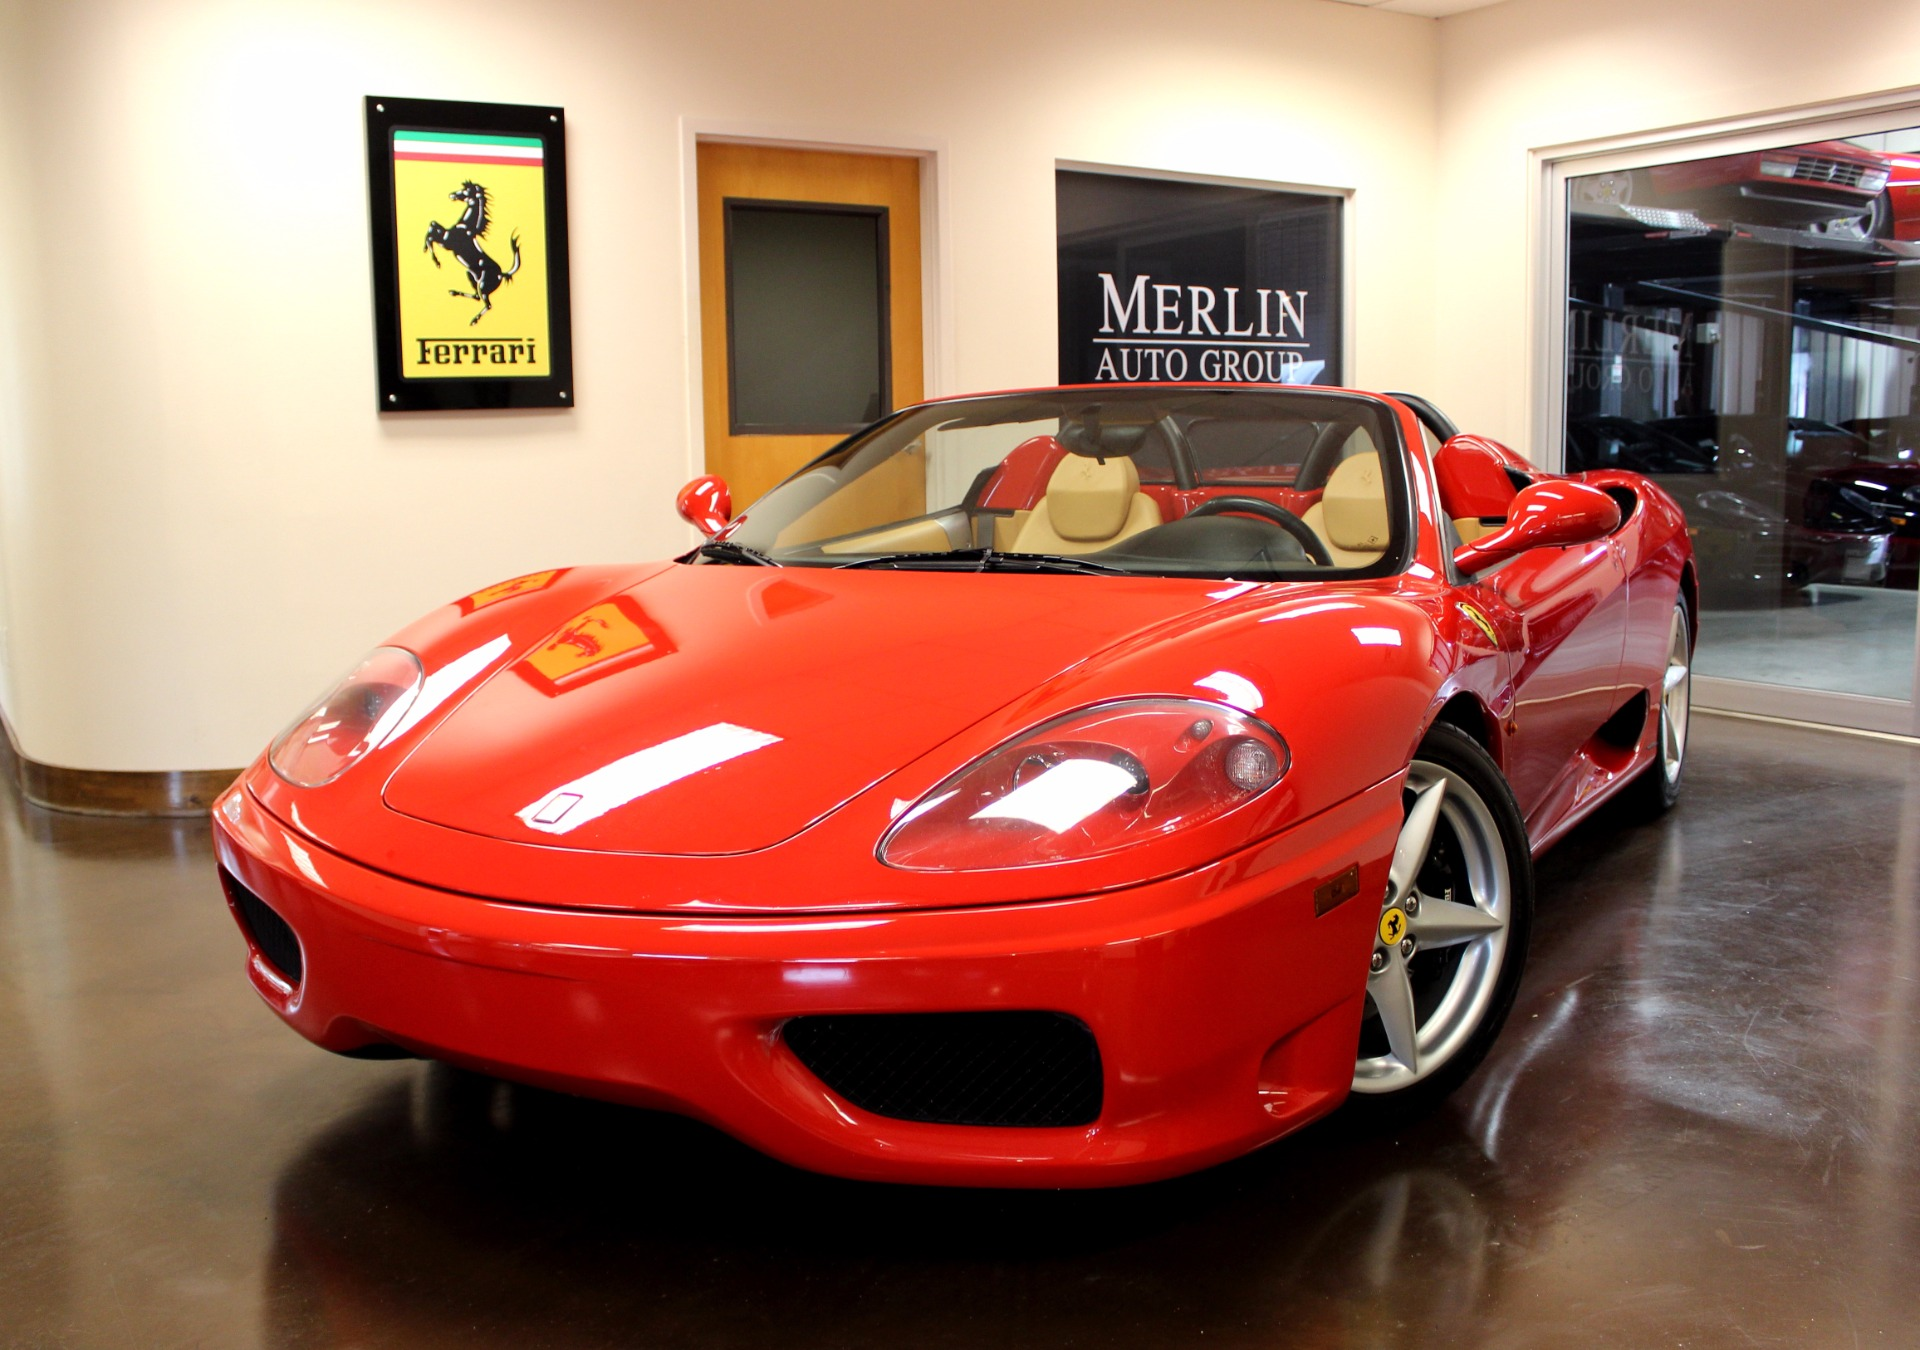 used 2005 ferrari 360 stock p3660 ultra luxury car from merlin auto group. Black Bedroom Furniture Sets. Home Design Ideas